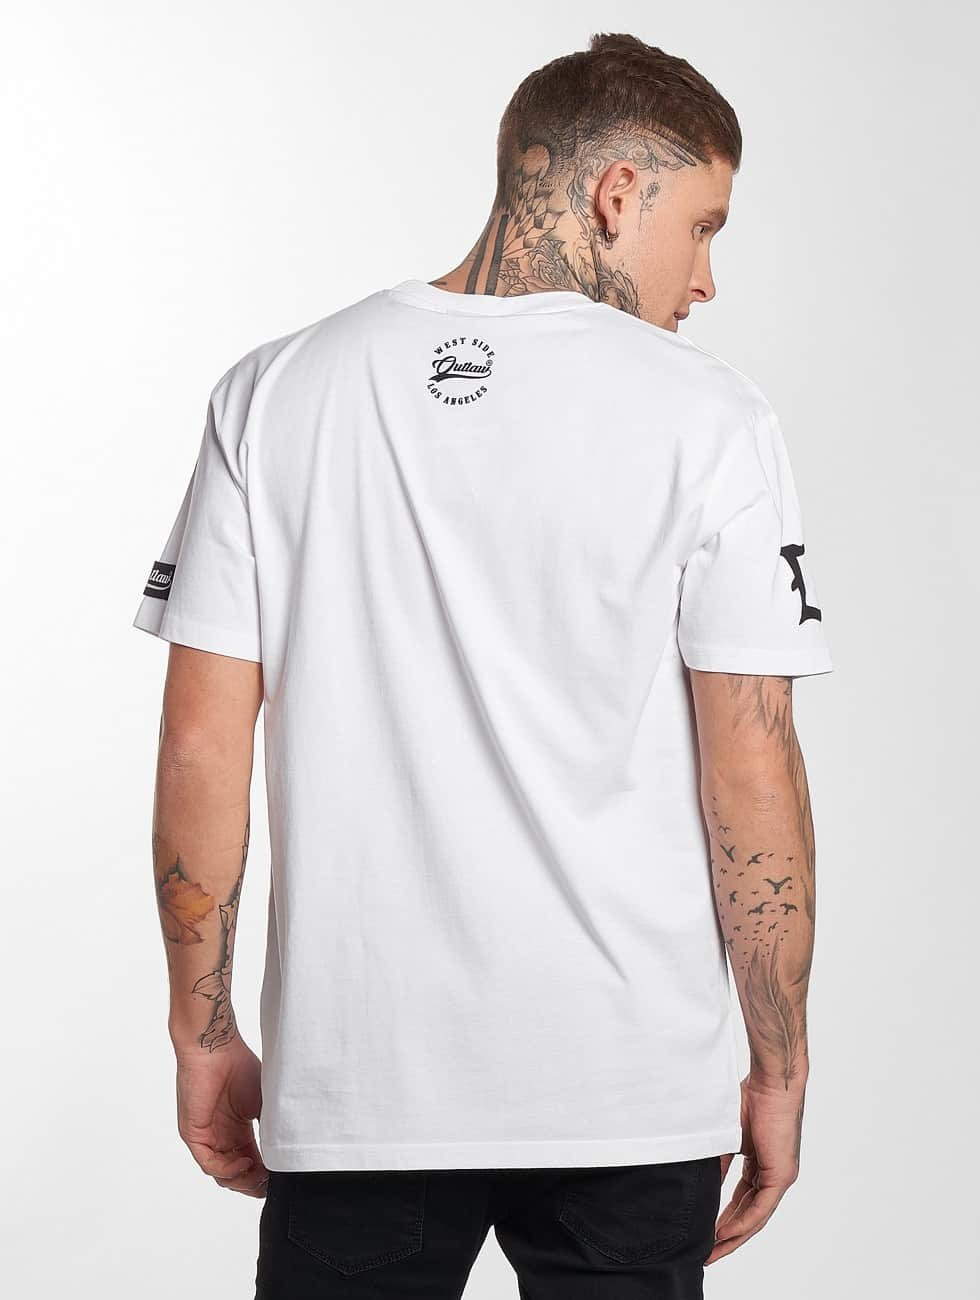 Outlaw t-shirt Outlaw Customs wit